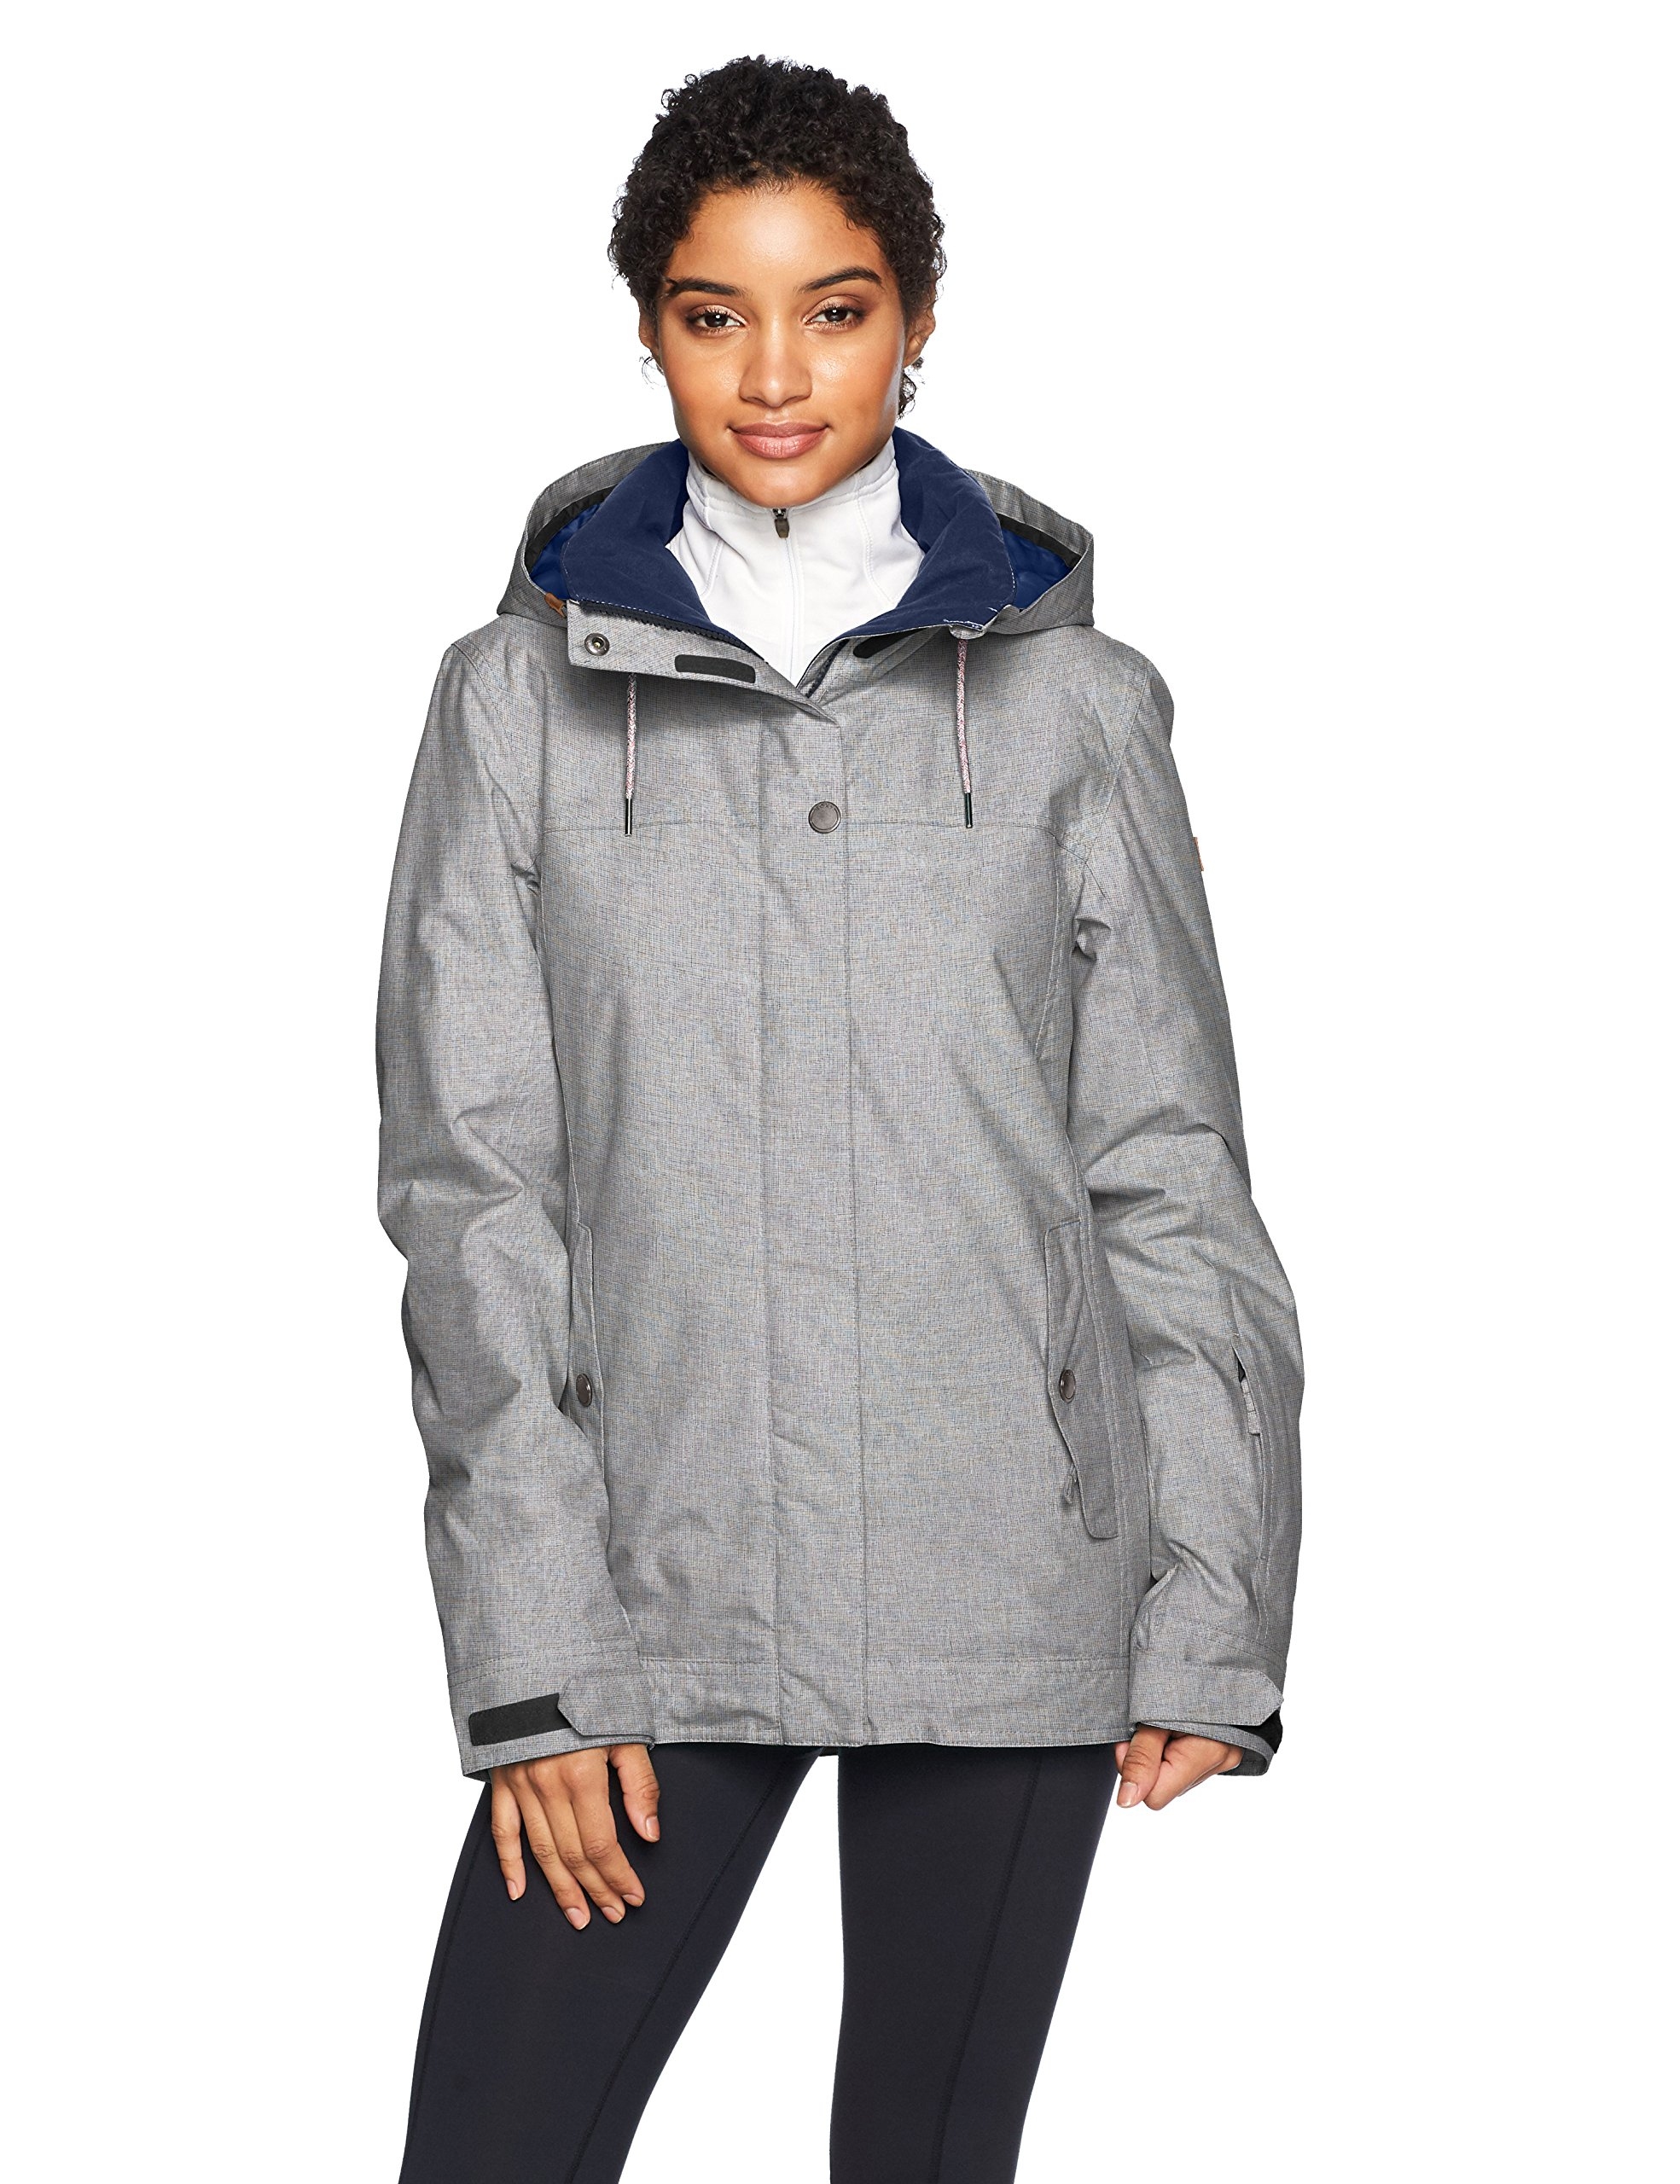 Roxy SNOW Junior's Billie Snow Jacket, Heritage Heather, S